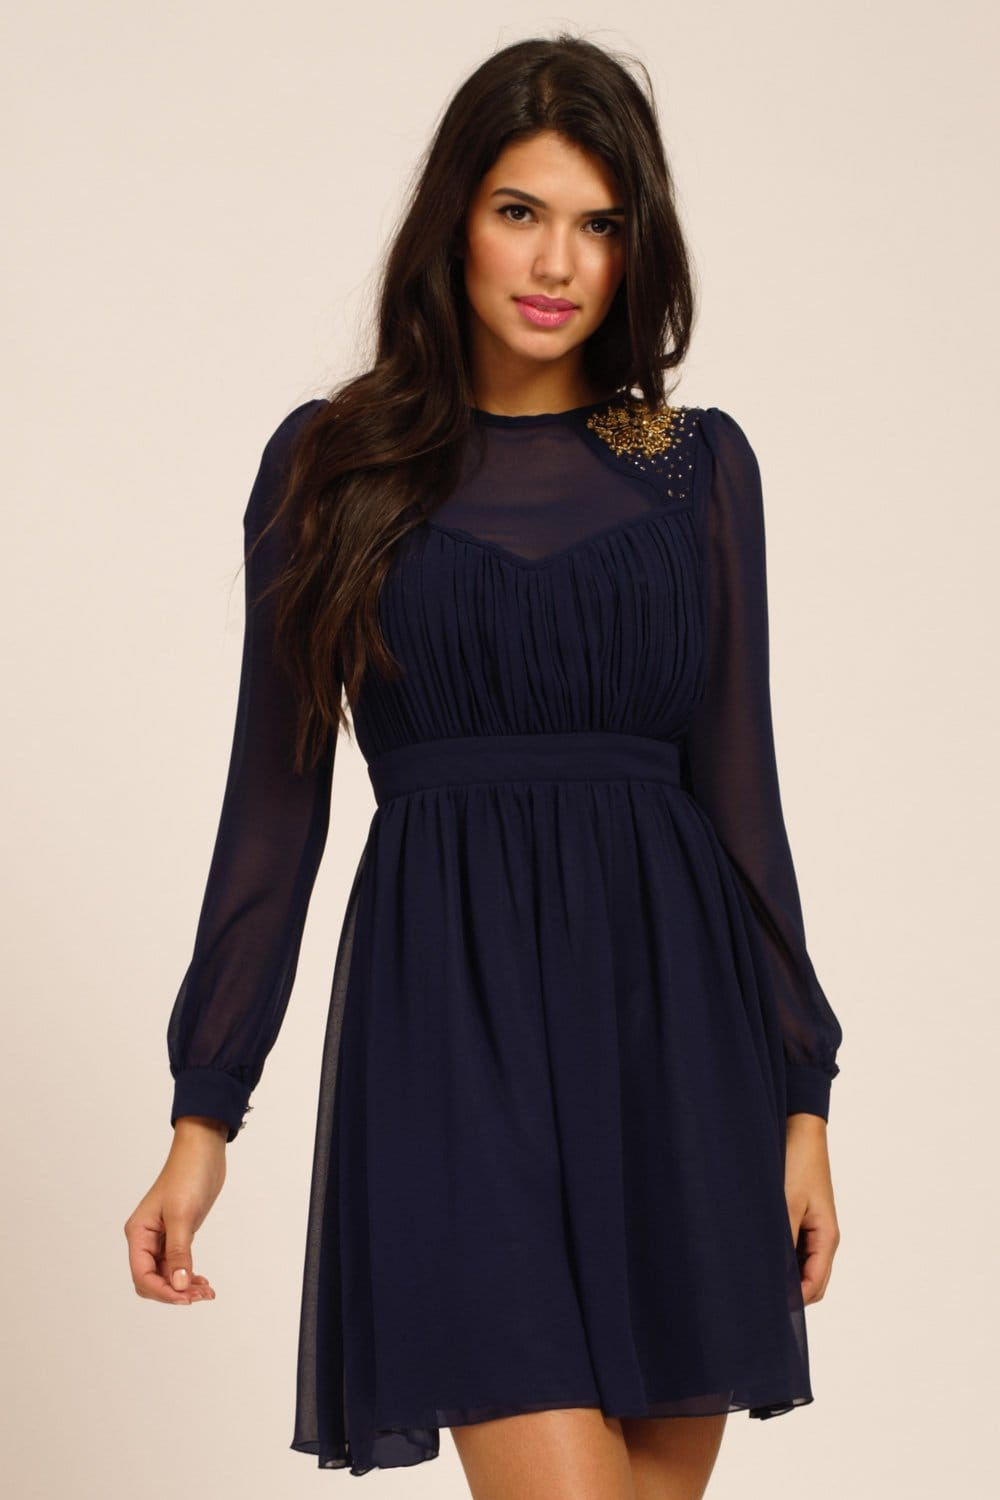 Find great deals on eBay for navy blue long sleeve dress. Shop with confidence.